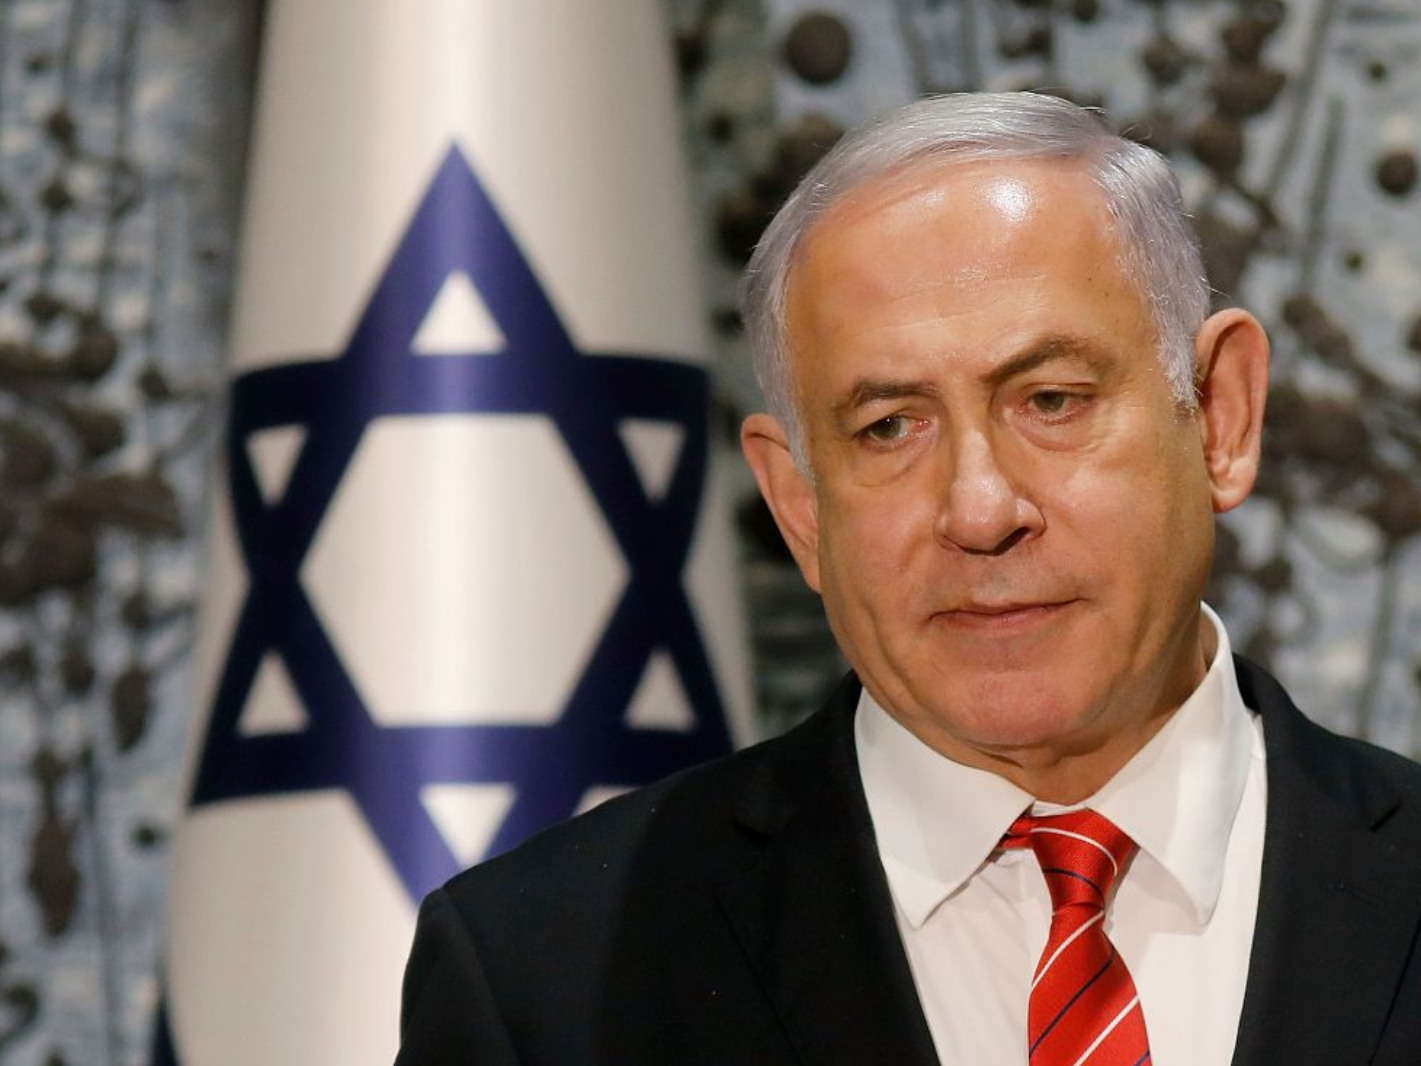 Israeli opposition party vows to form 'liberal' unity gov't